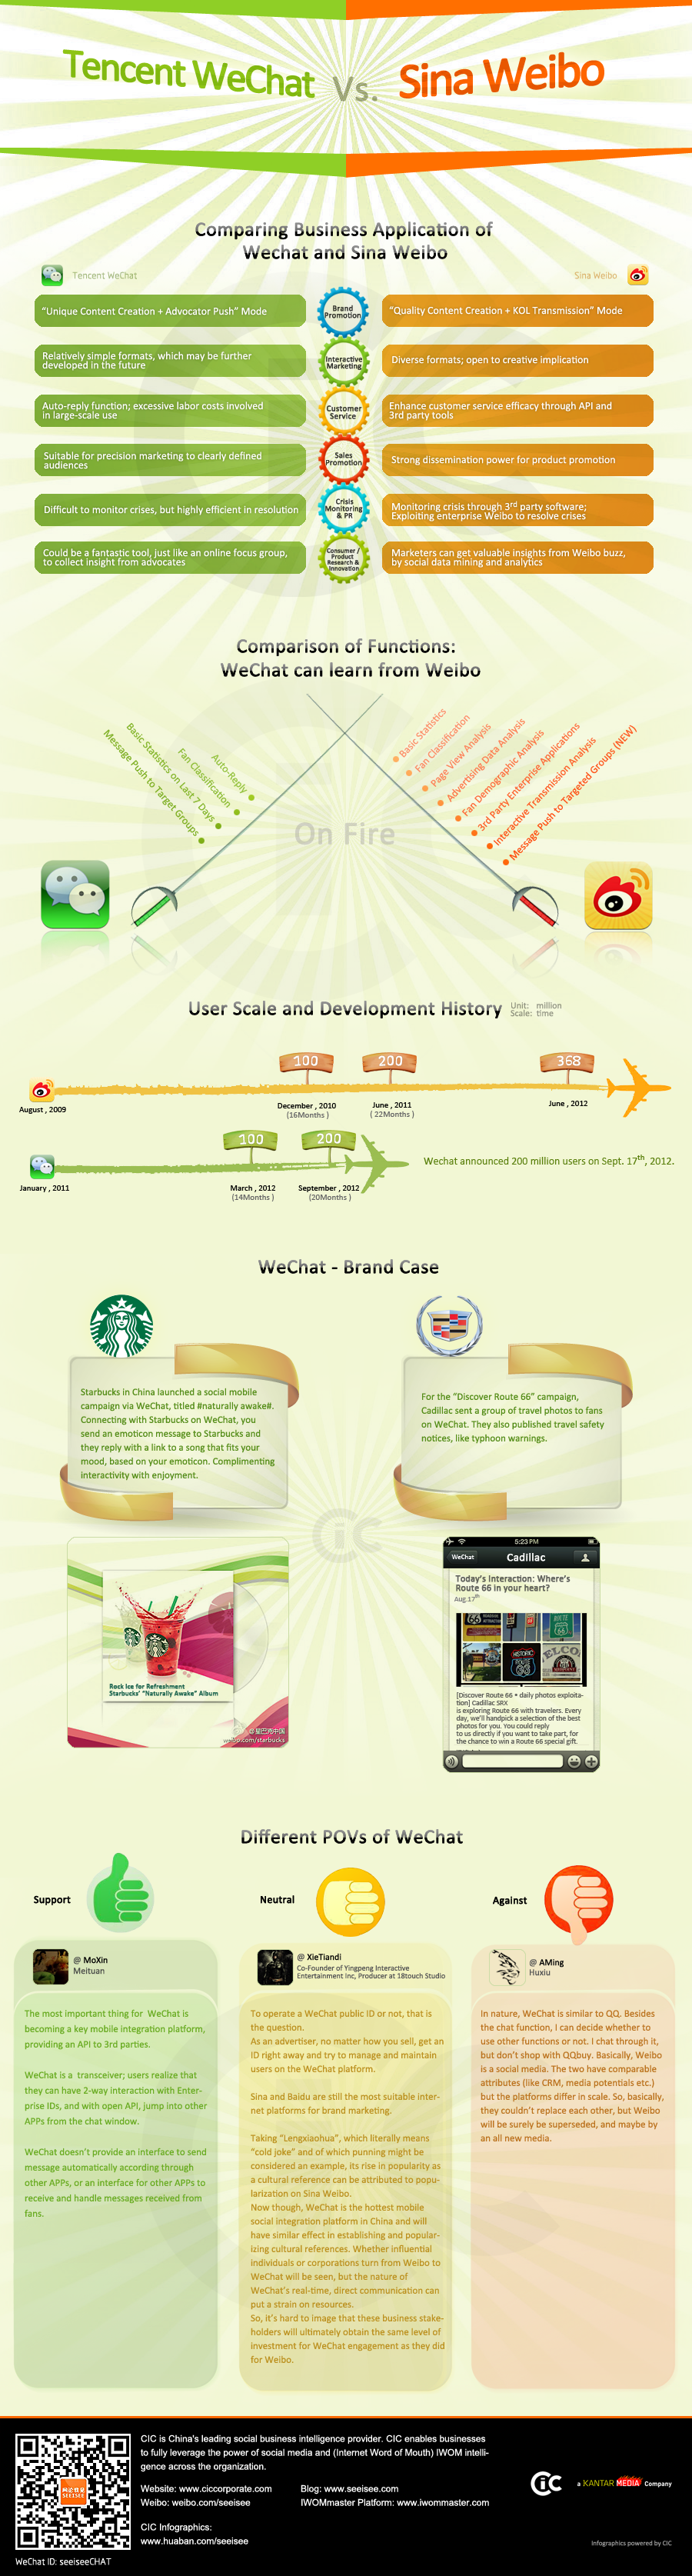 Weibo VS WeChat | Visual ly